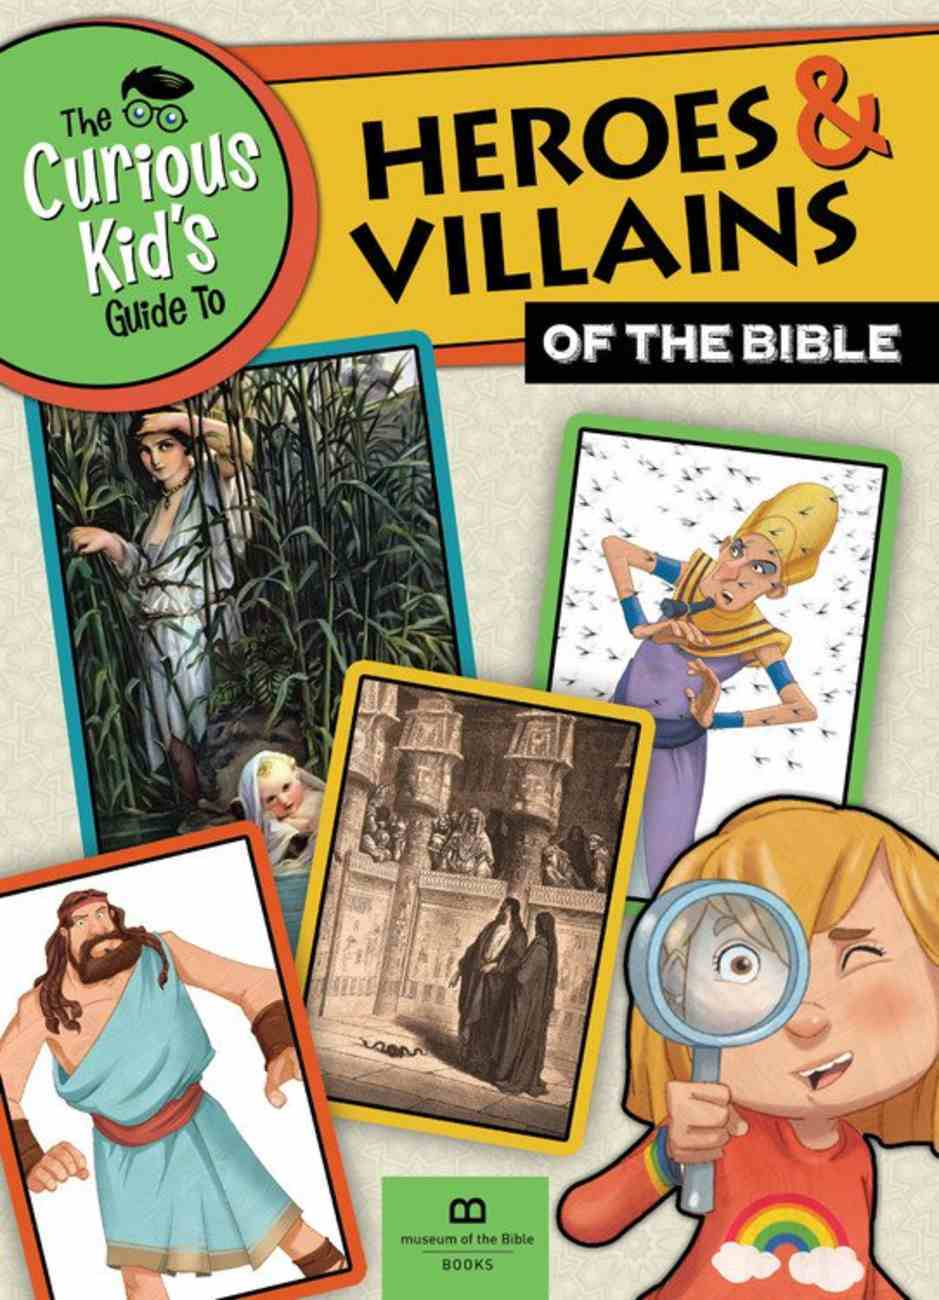 The Curious Kid's Guide to Heroes and Villians of the Bible Paperback